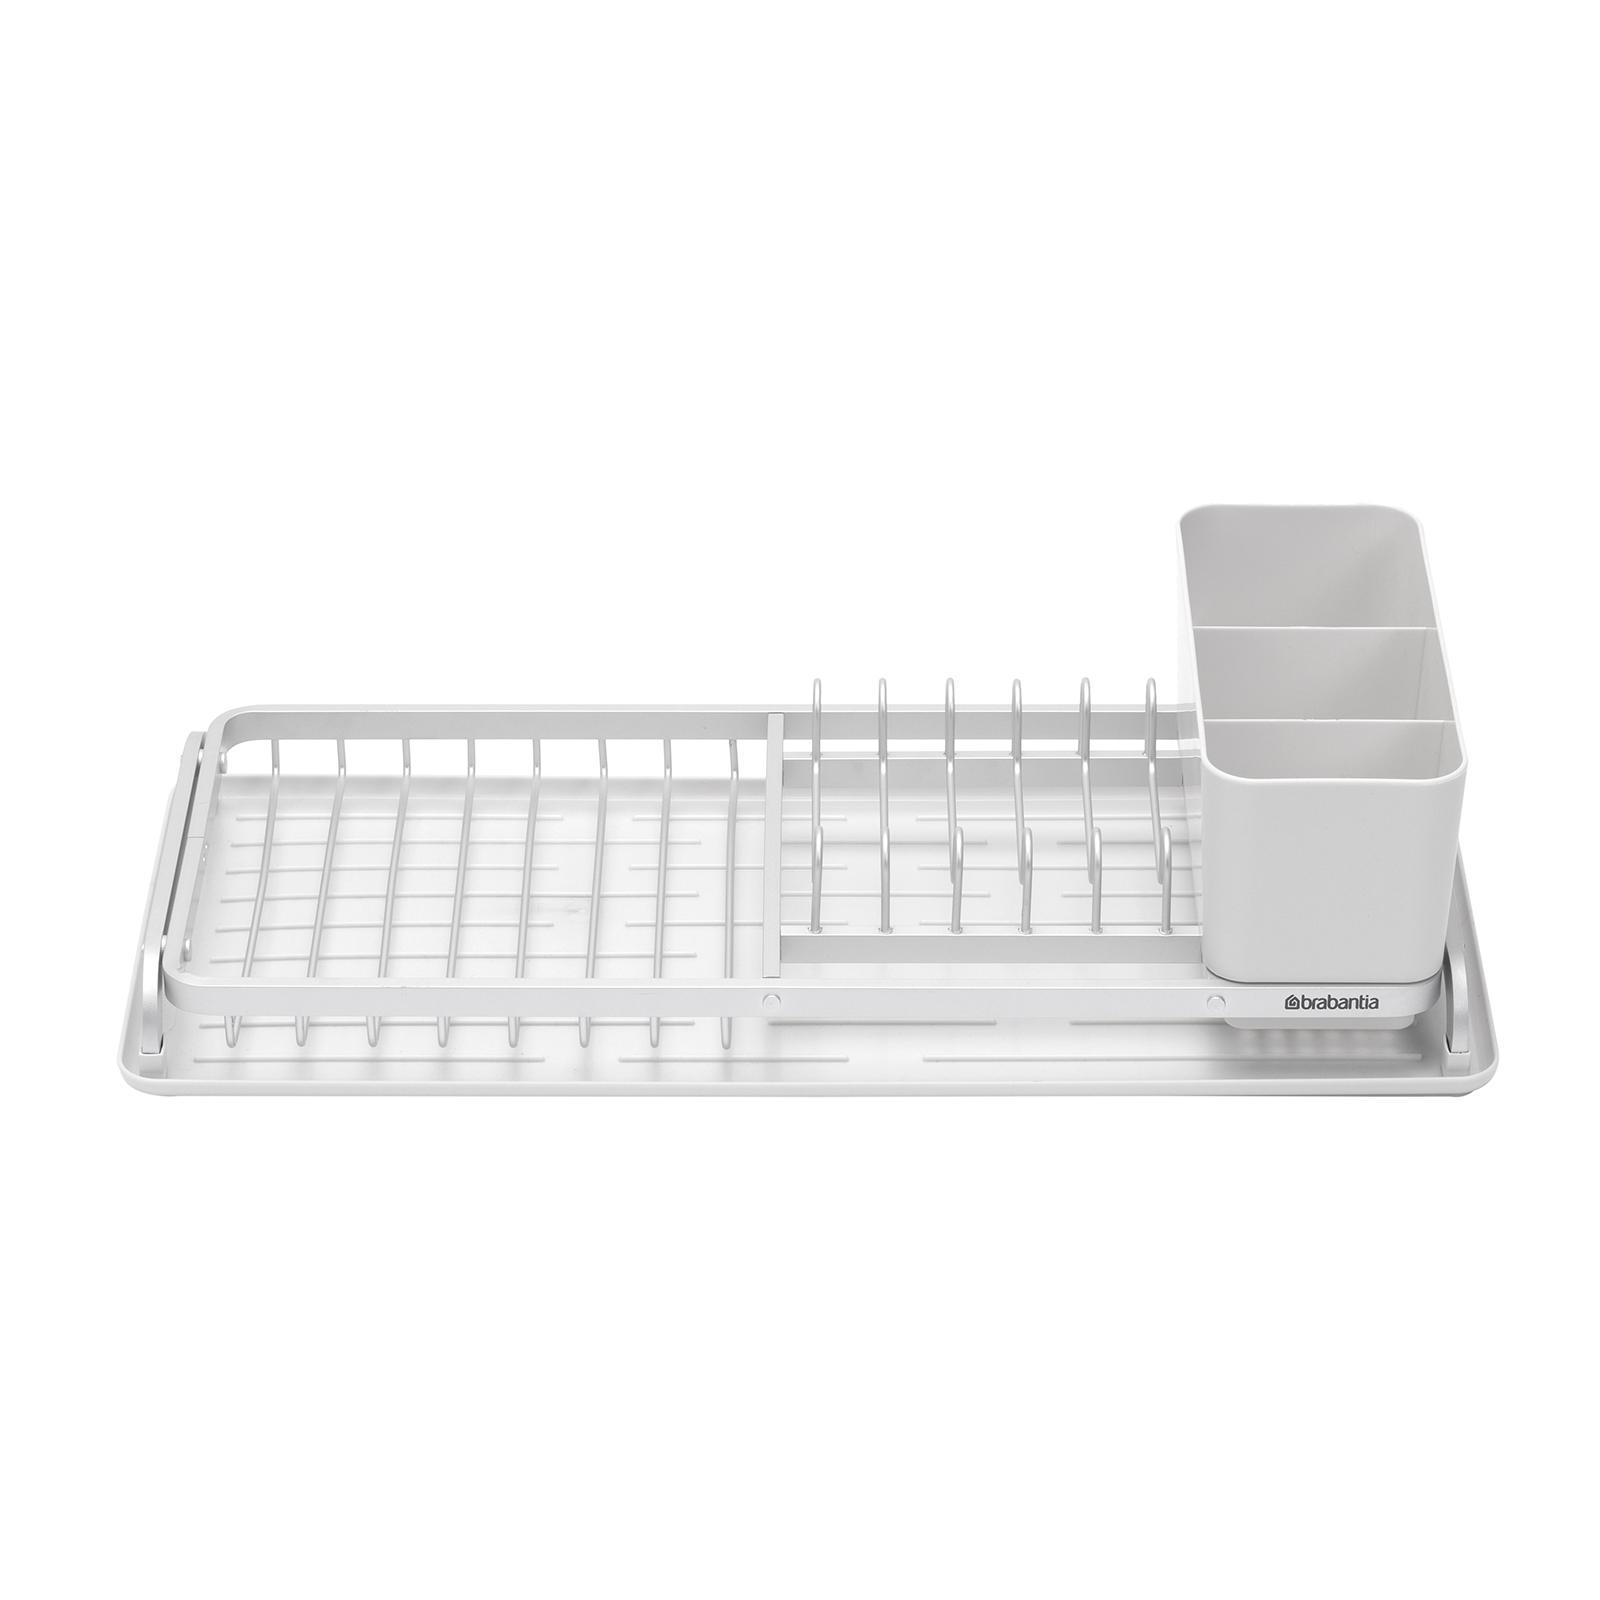 Brabantia Compact Dish Drying Rack - Light Grey